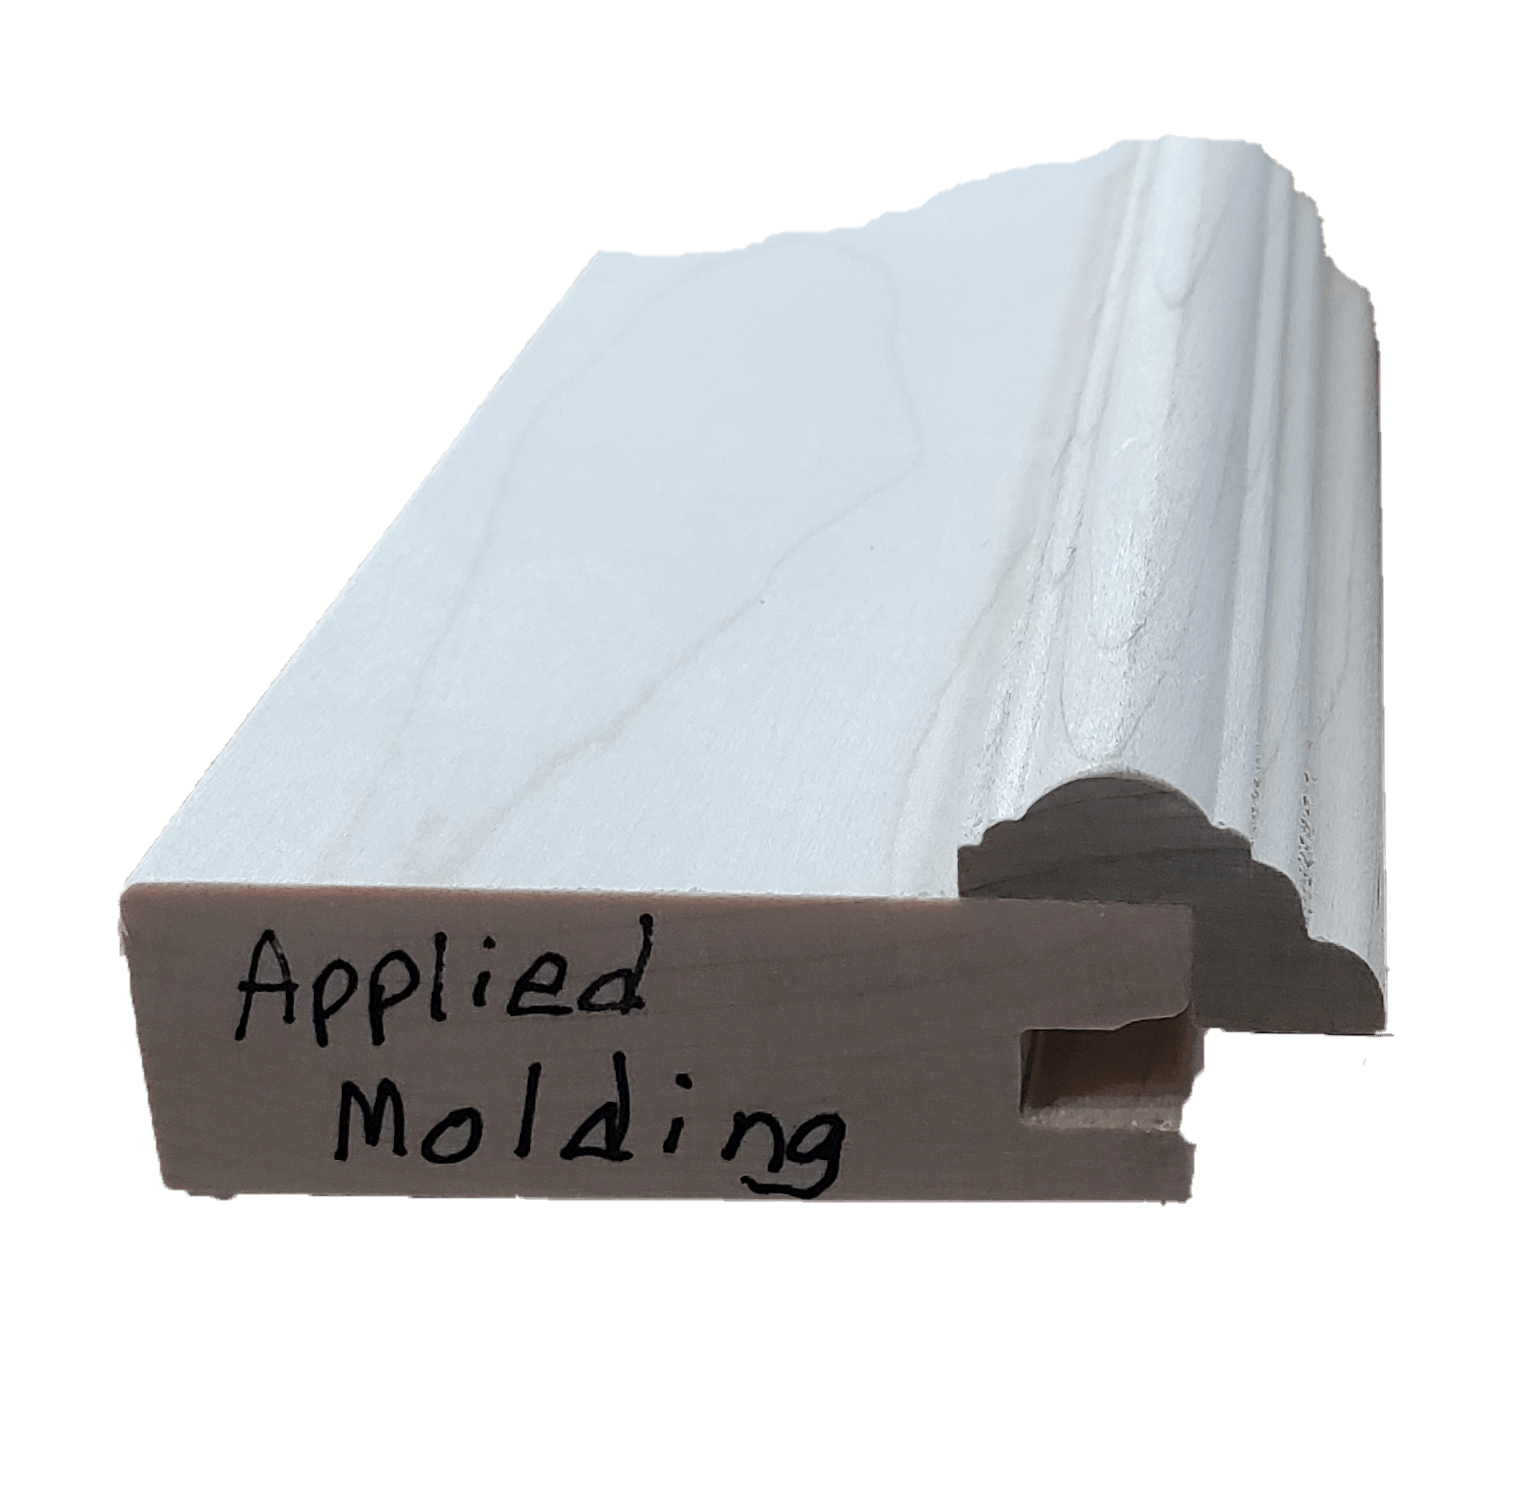 P Applied Molding